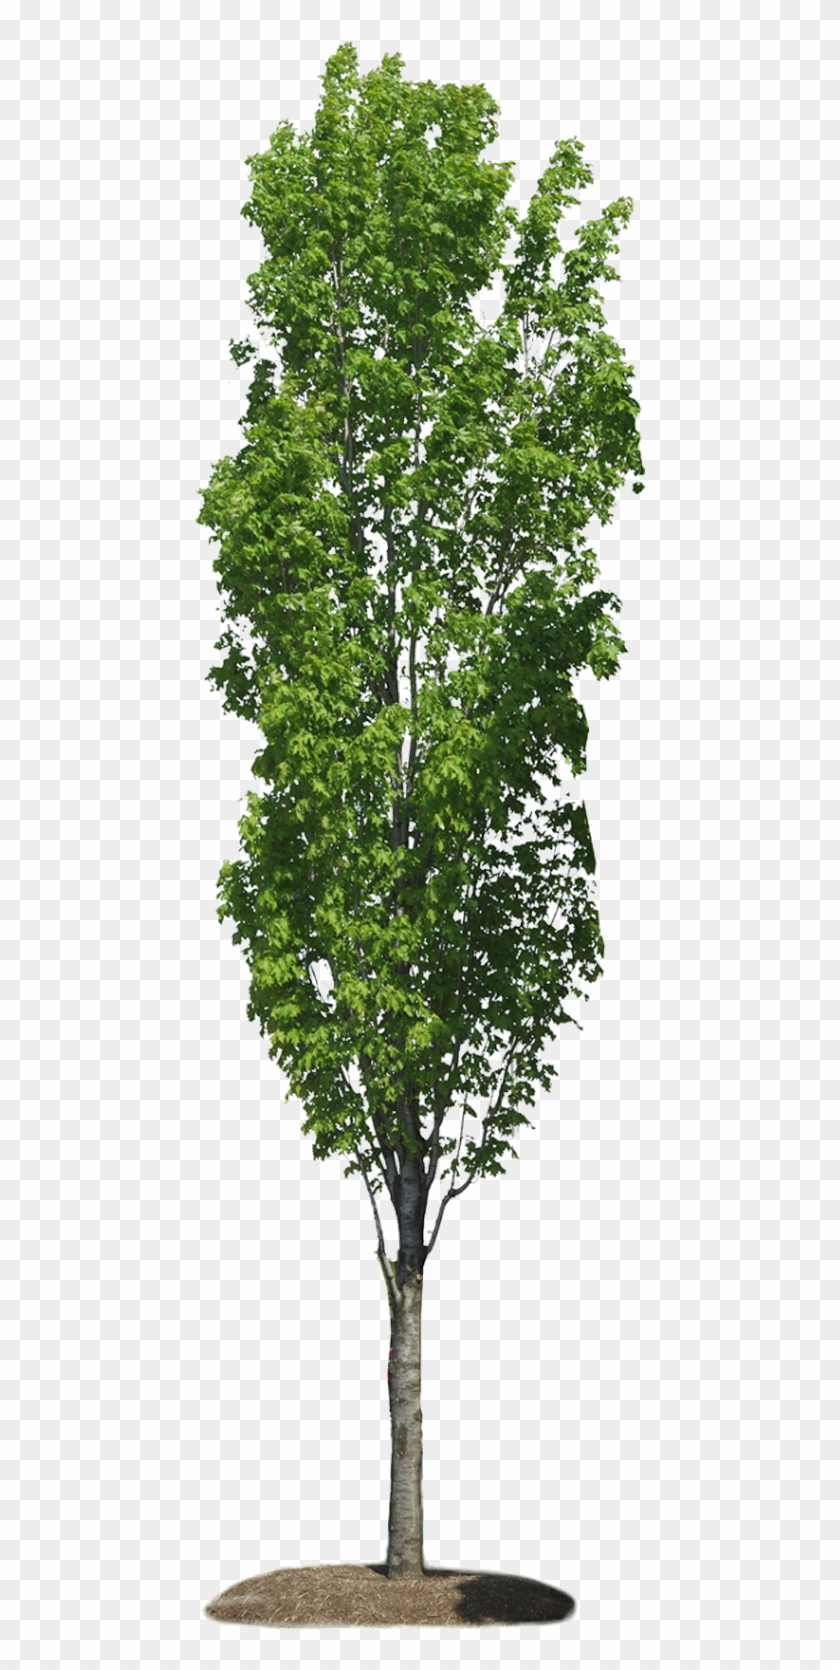 Png Arbres Bushes And Trees Cut Out Transparent Png 460x1600